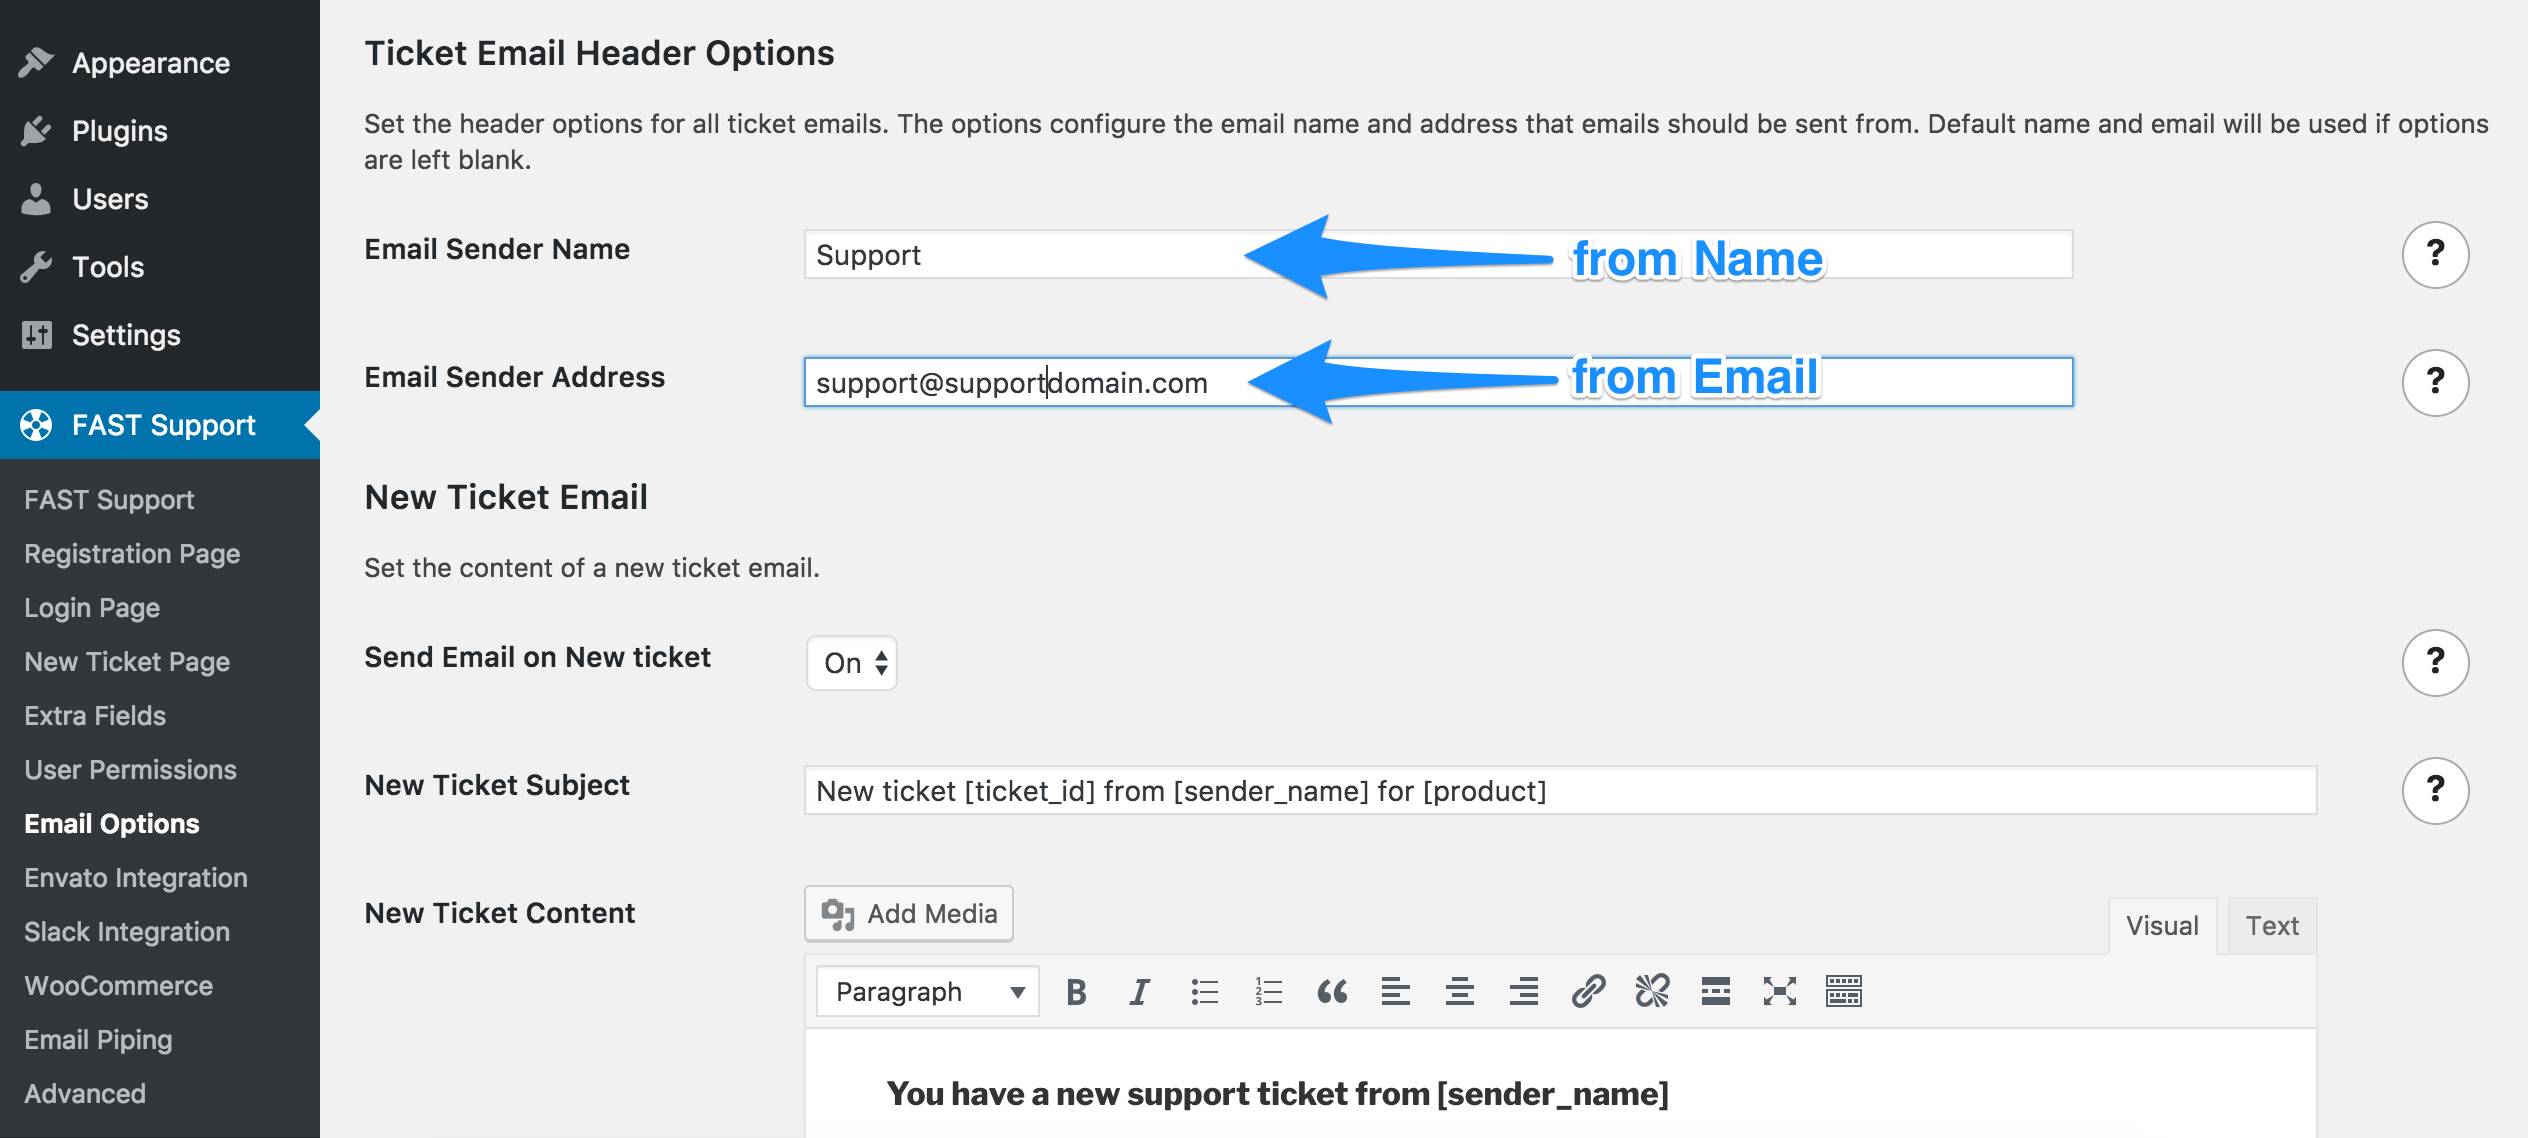 Email Header Options